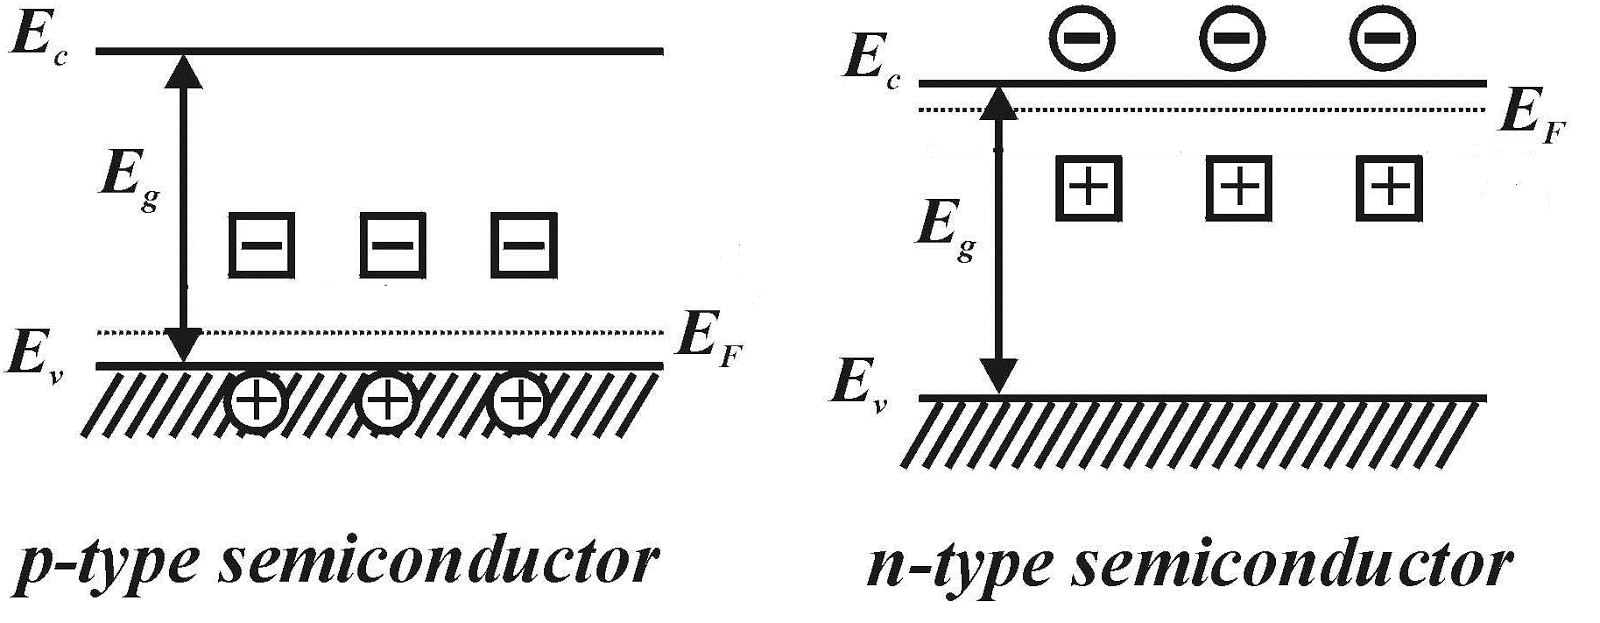 Electronics and communications pn junction diode when p region and n region are brought in close contact this large concentration gradient at the junction causes diffusion of carriers pooptronica